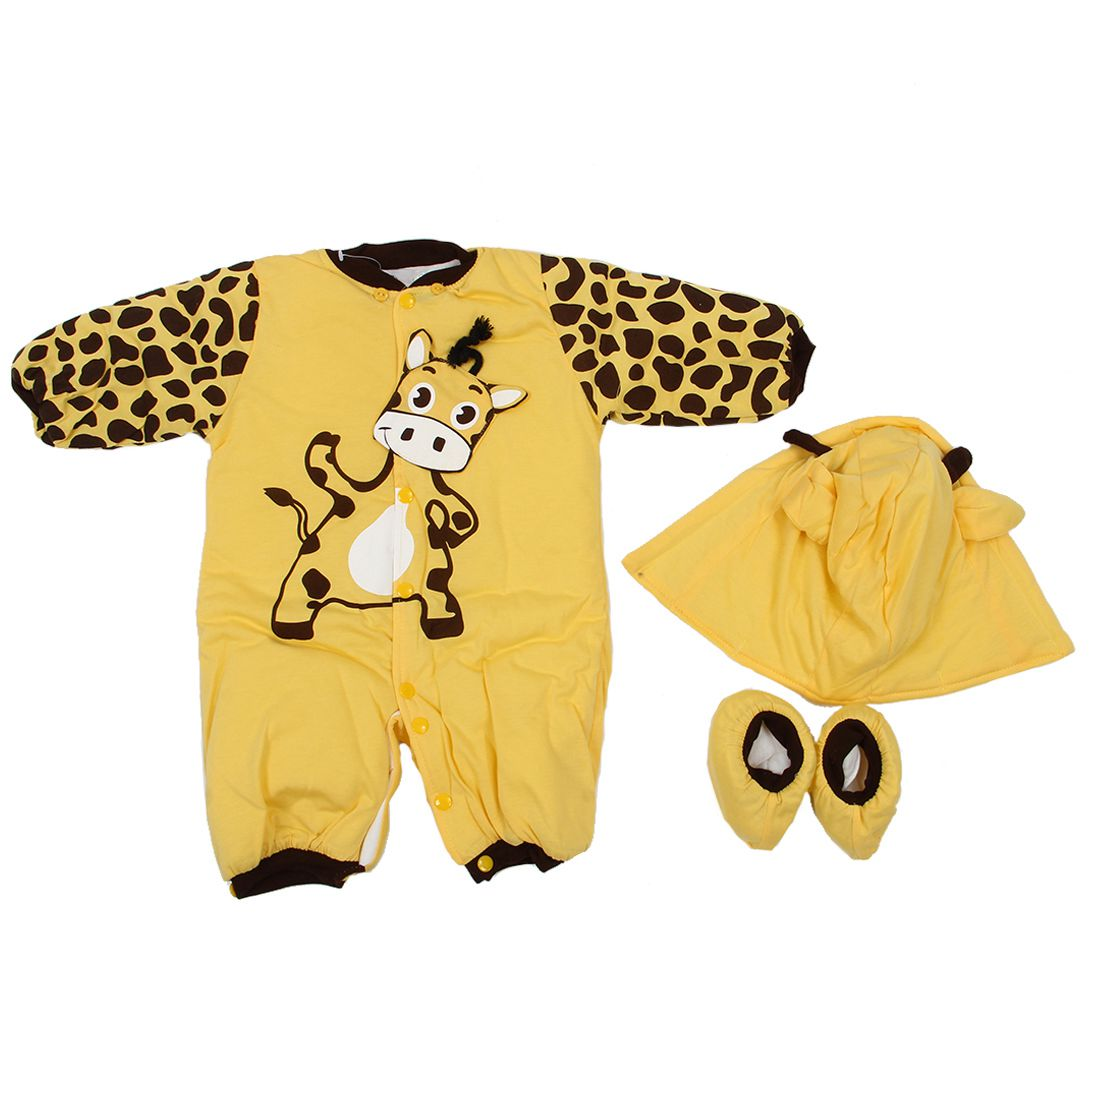 ABWE Best Sale new Autumn Winter Clothing sets Cartoon Animal Style Cotton-padded Baby boys Rompers Cows Warm Kids girls badys